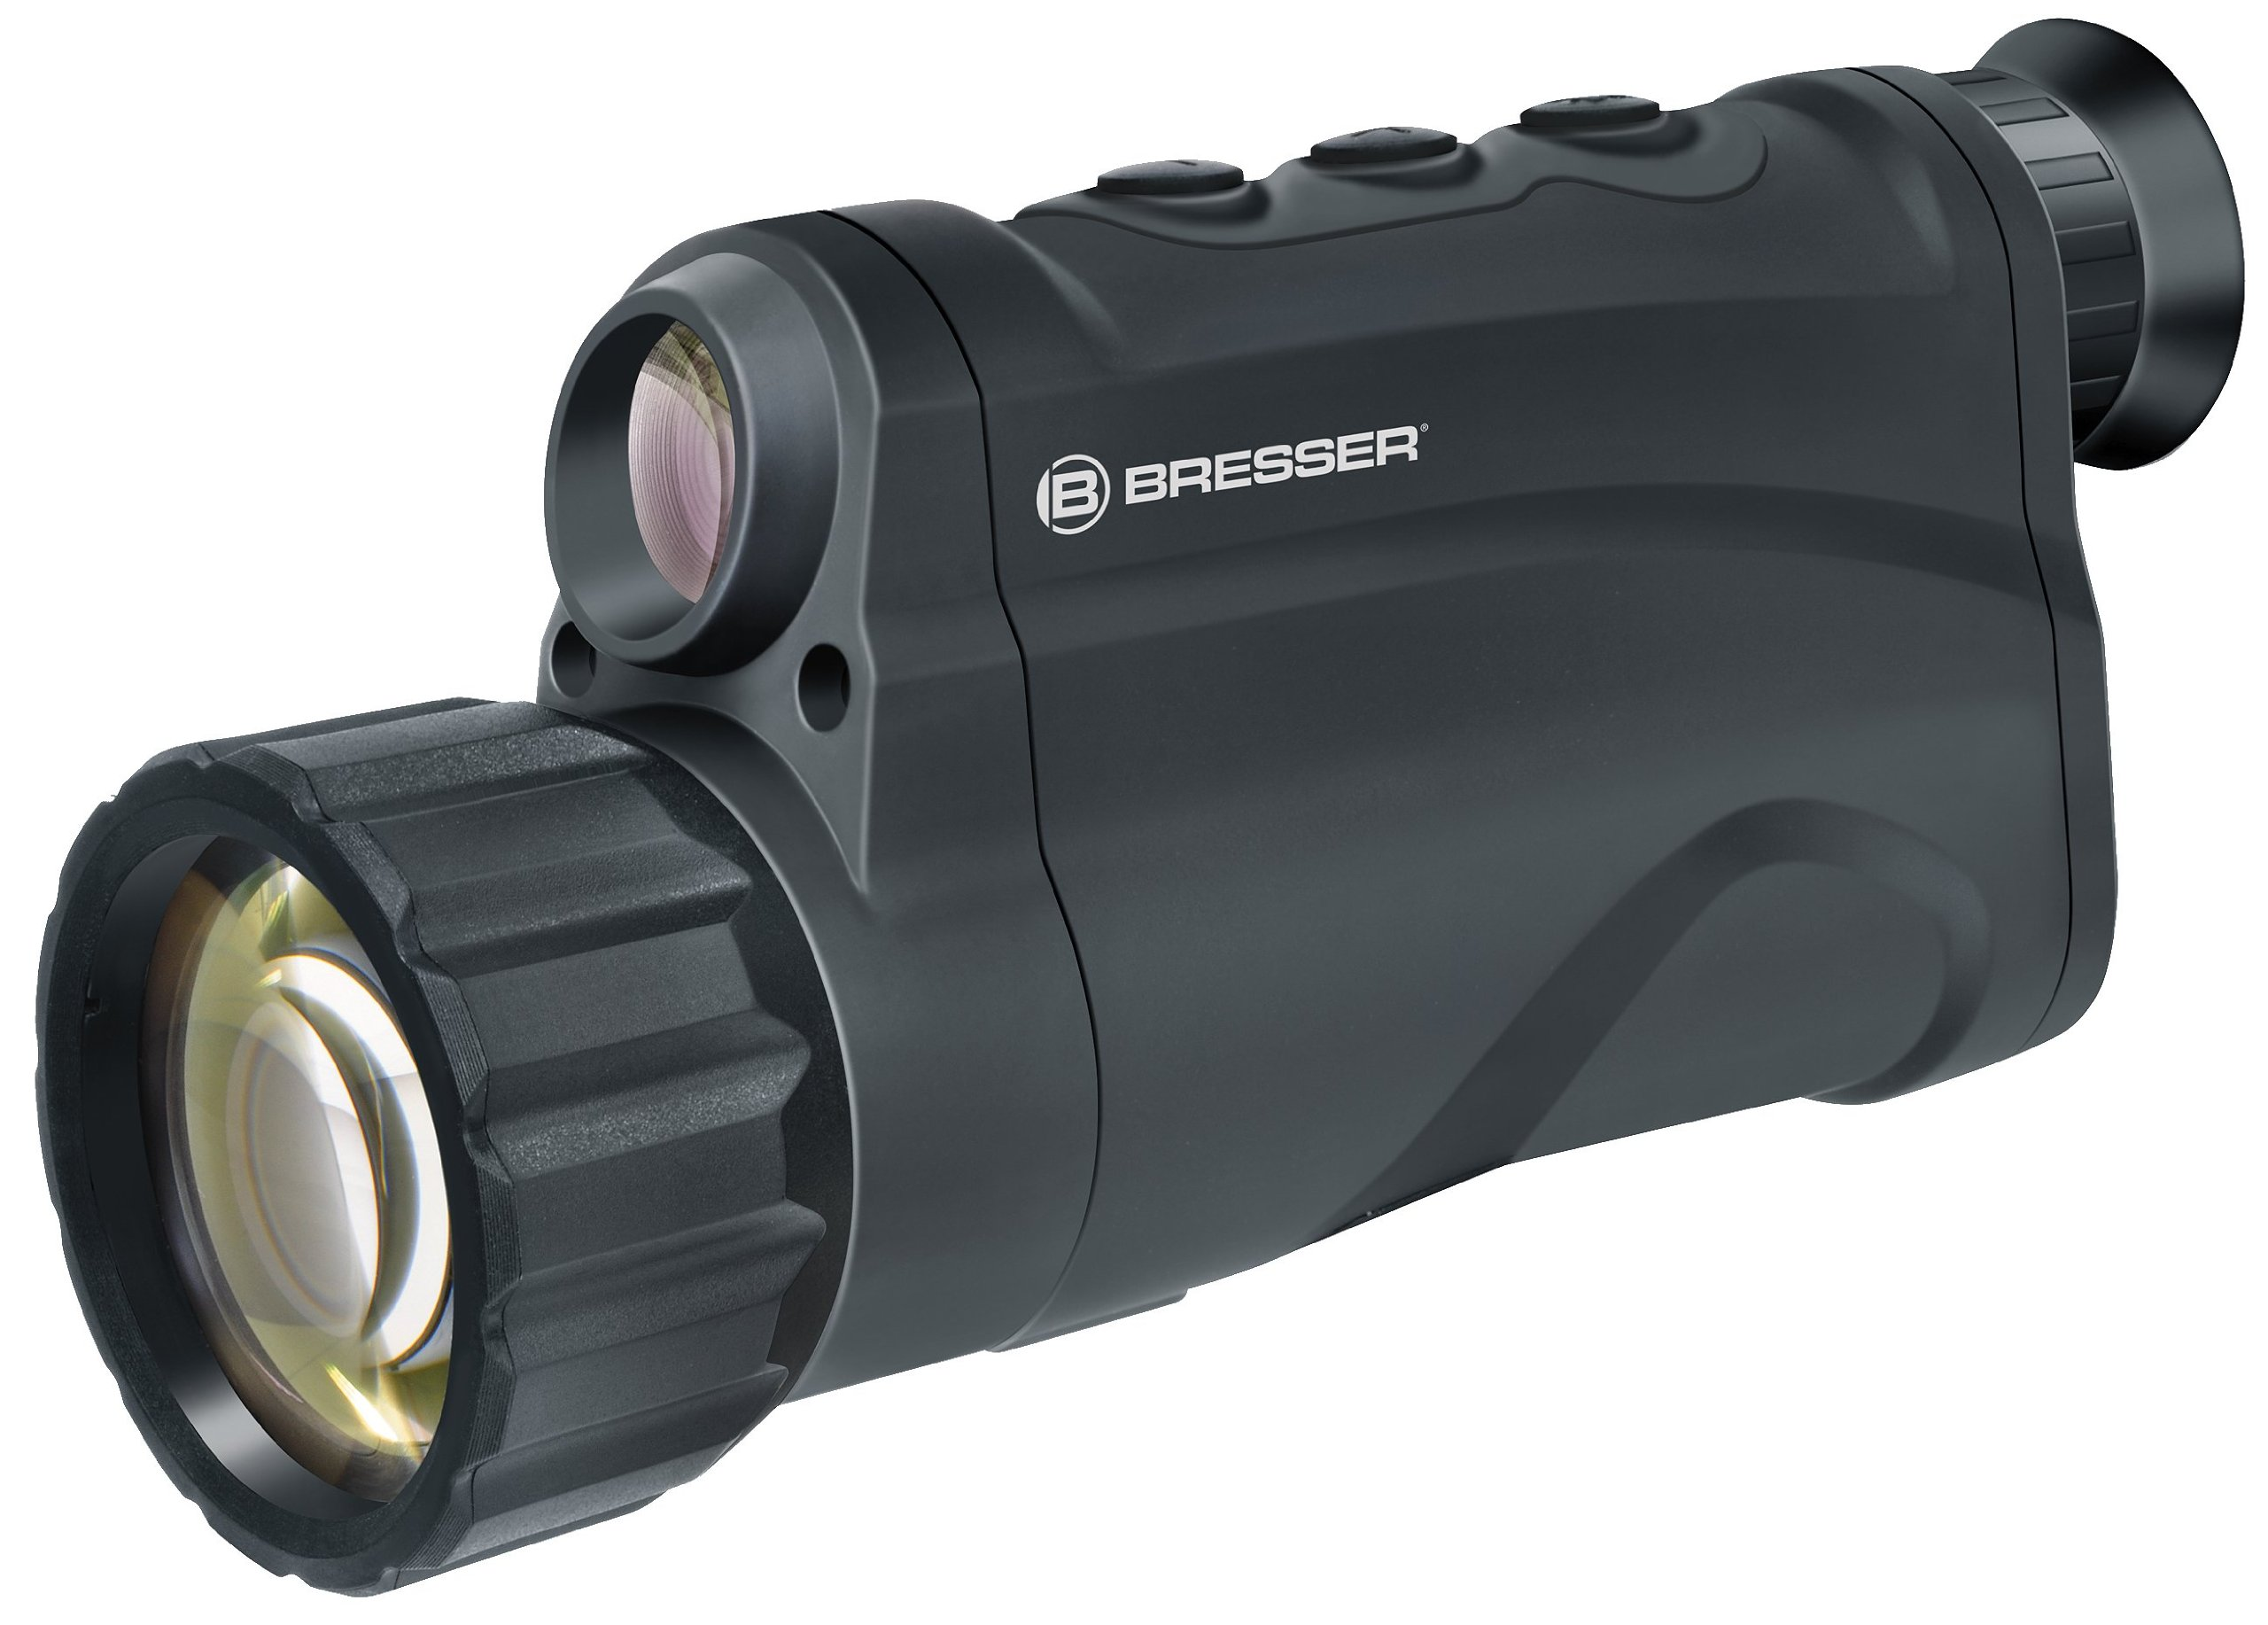 Bresser Night Vision Device